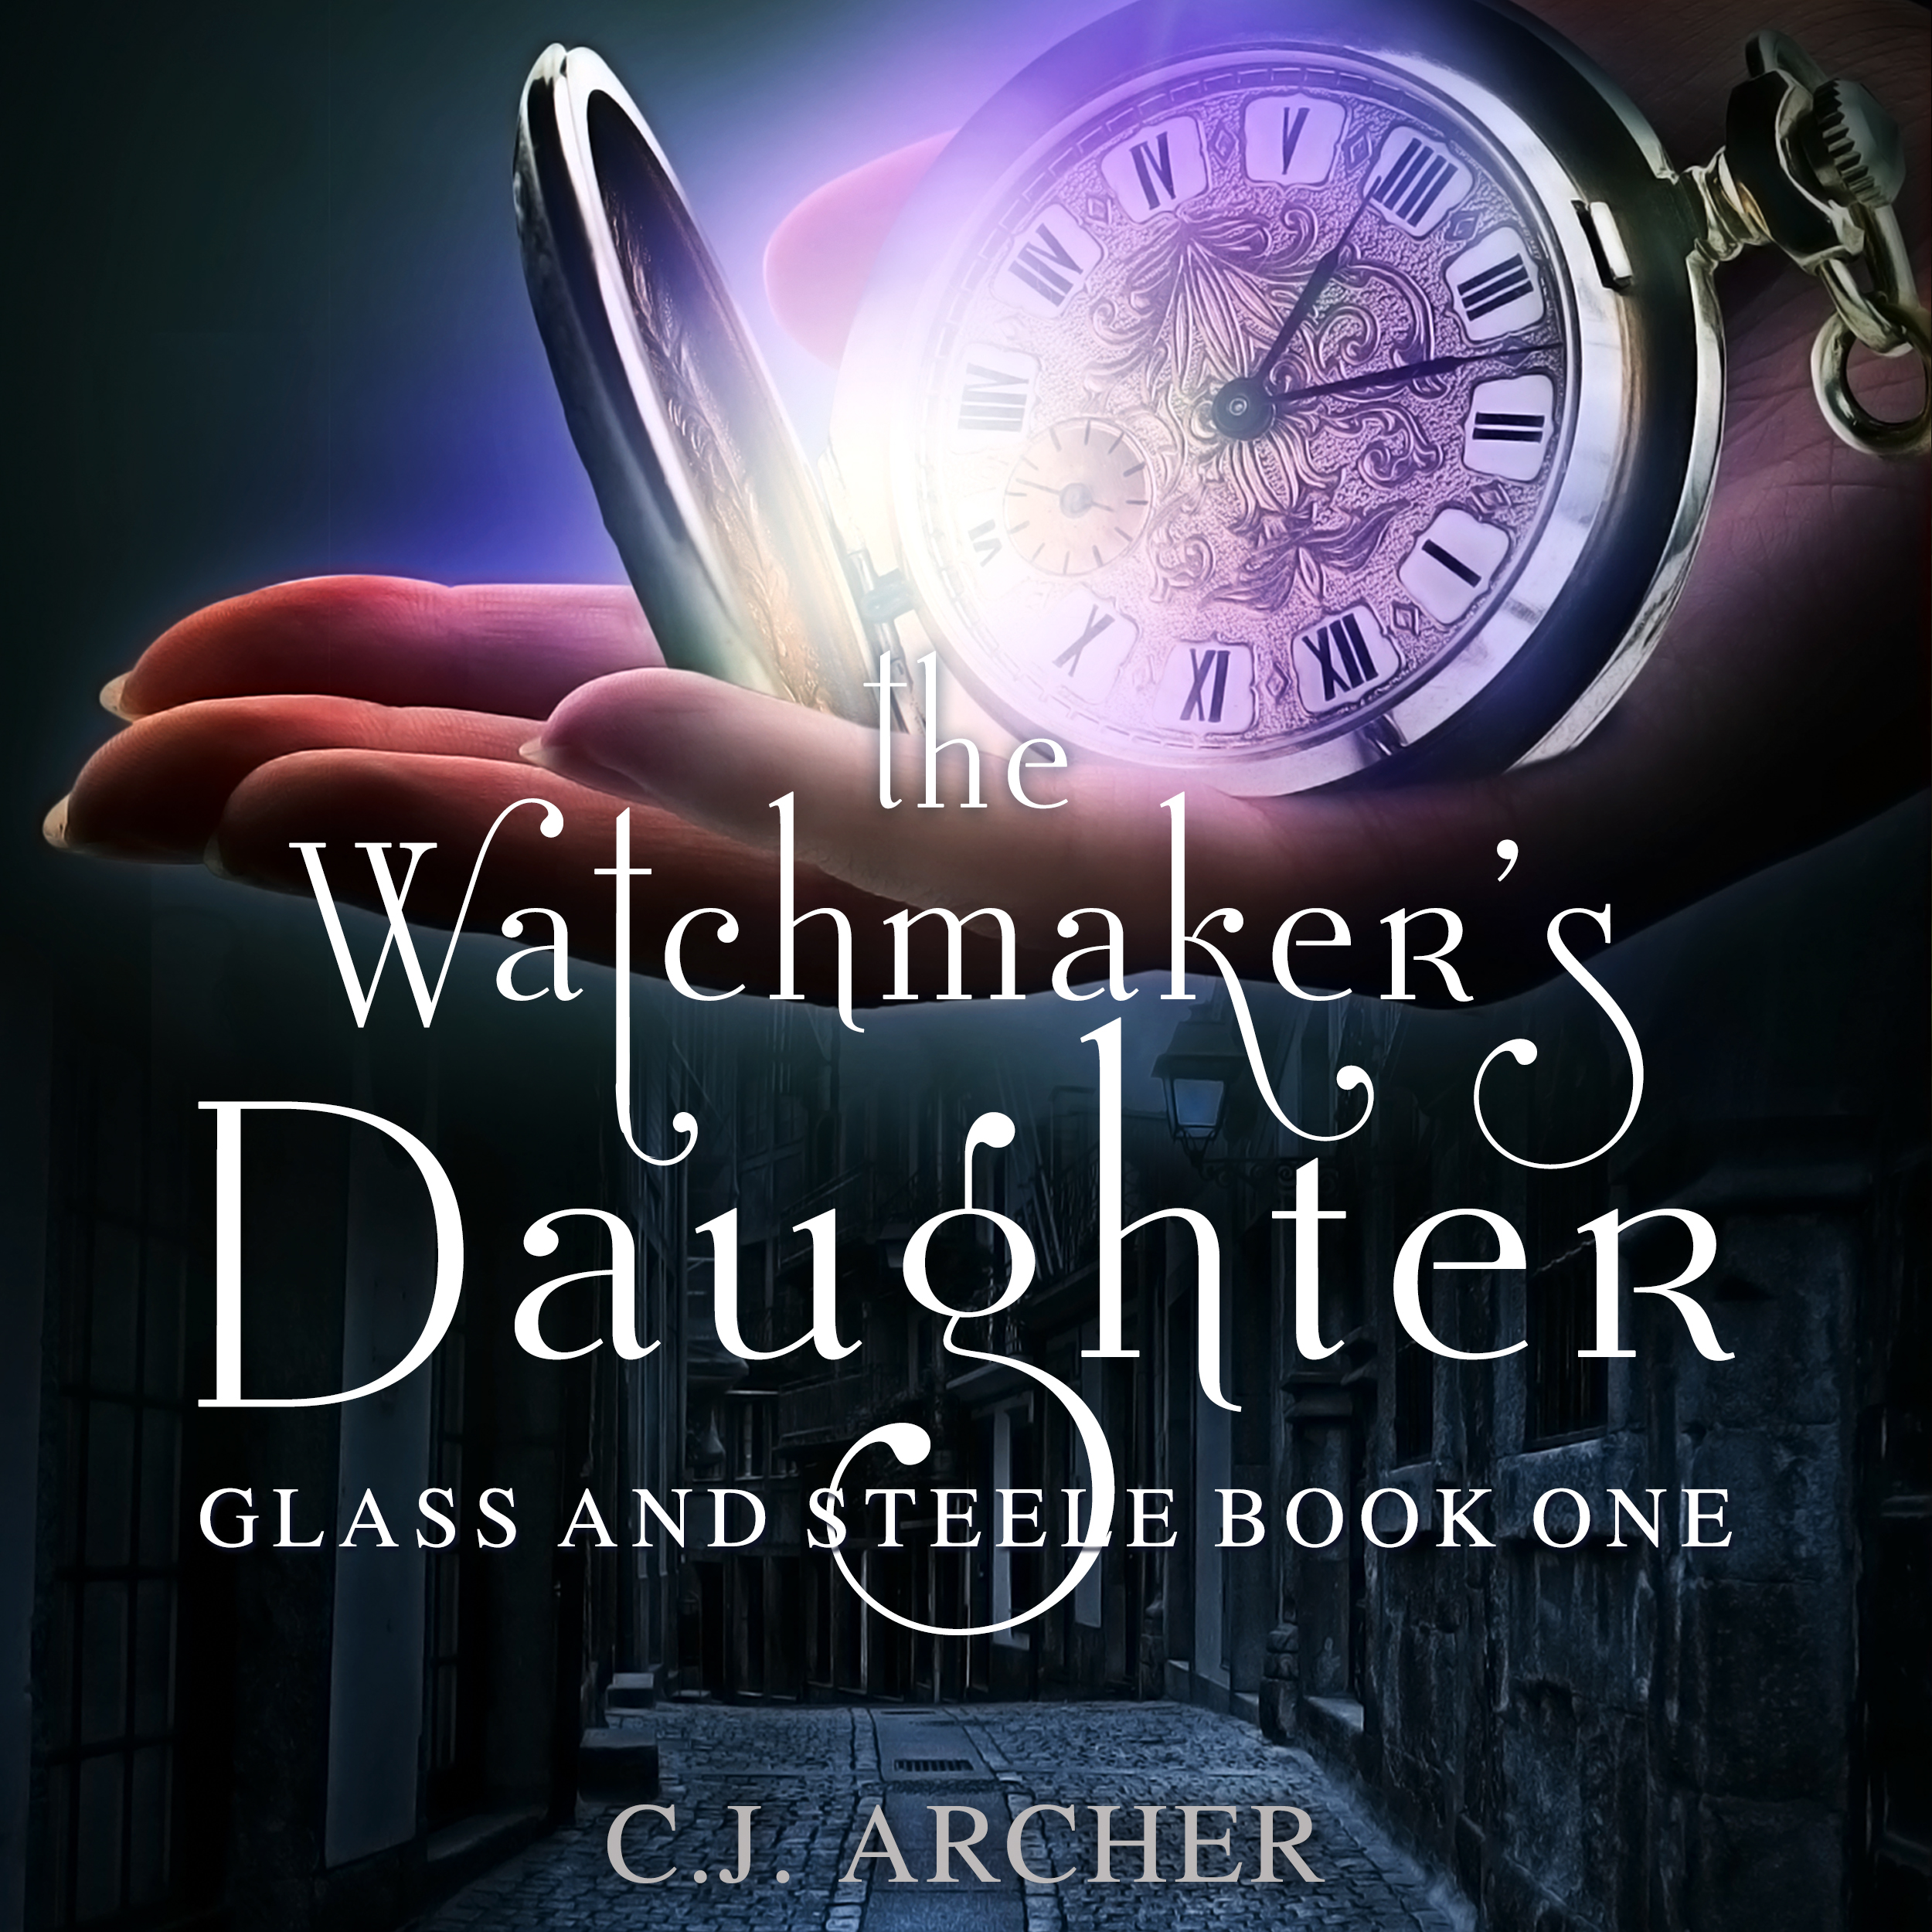 The Watchmaker's Daughter audiobook by CJ Archer